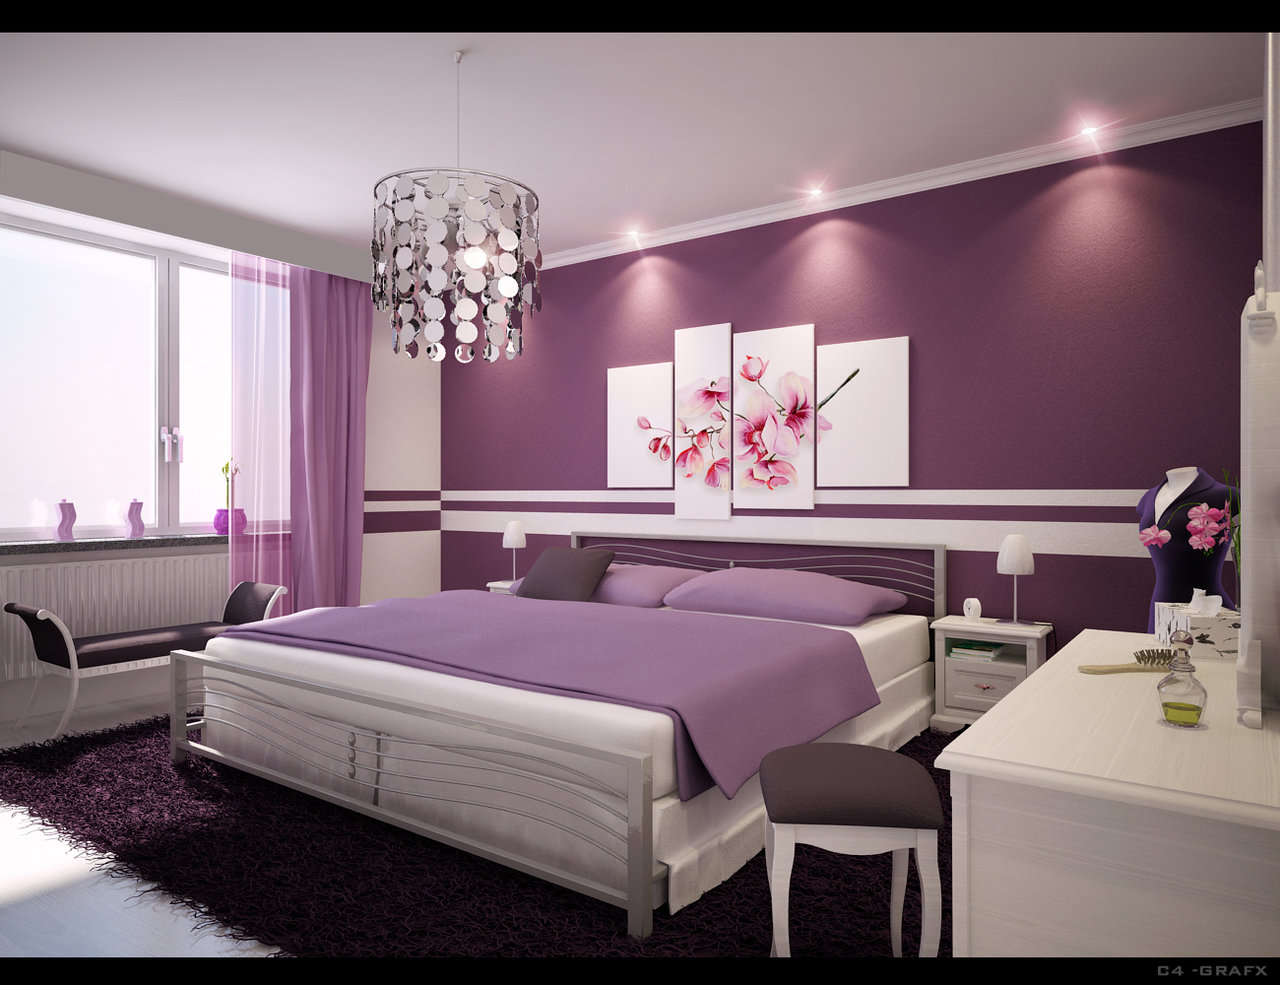 Home Interior Designs: Simple Ideas For Purple Room Design